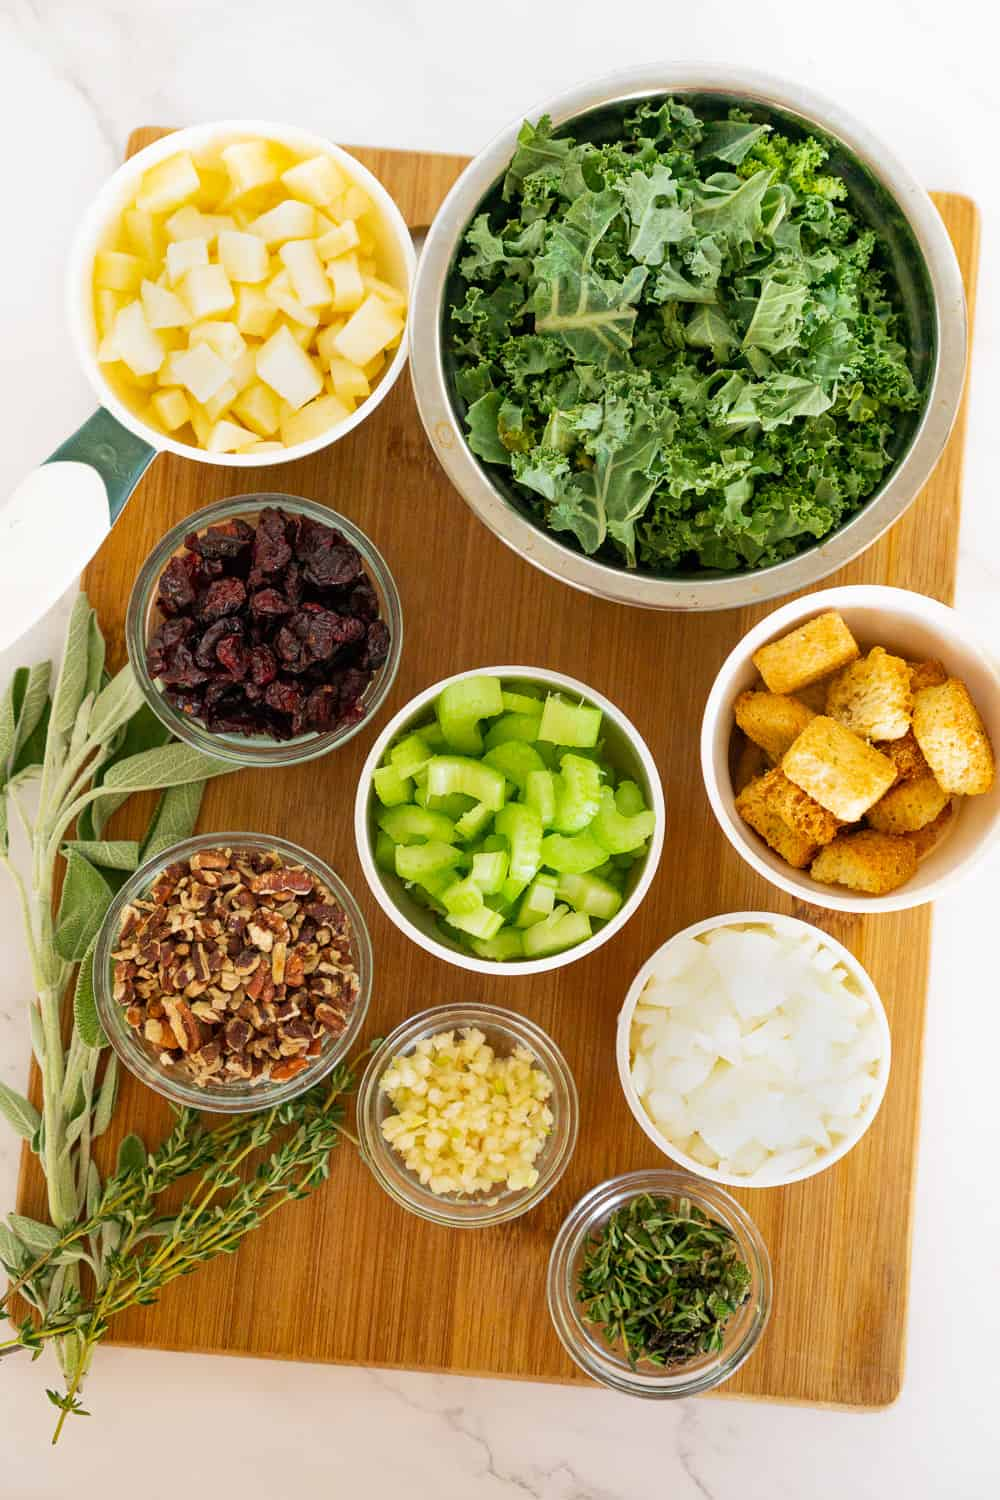 ingredients for vegan stuffing on a cutting board: apple, kale, celery, onion, croutons, garlic, pecans, dried cranberries, and fresh sage and thyme